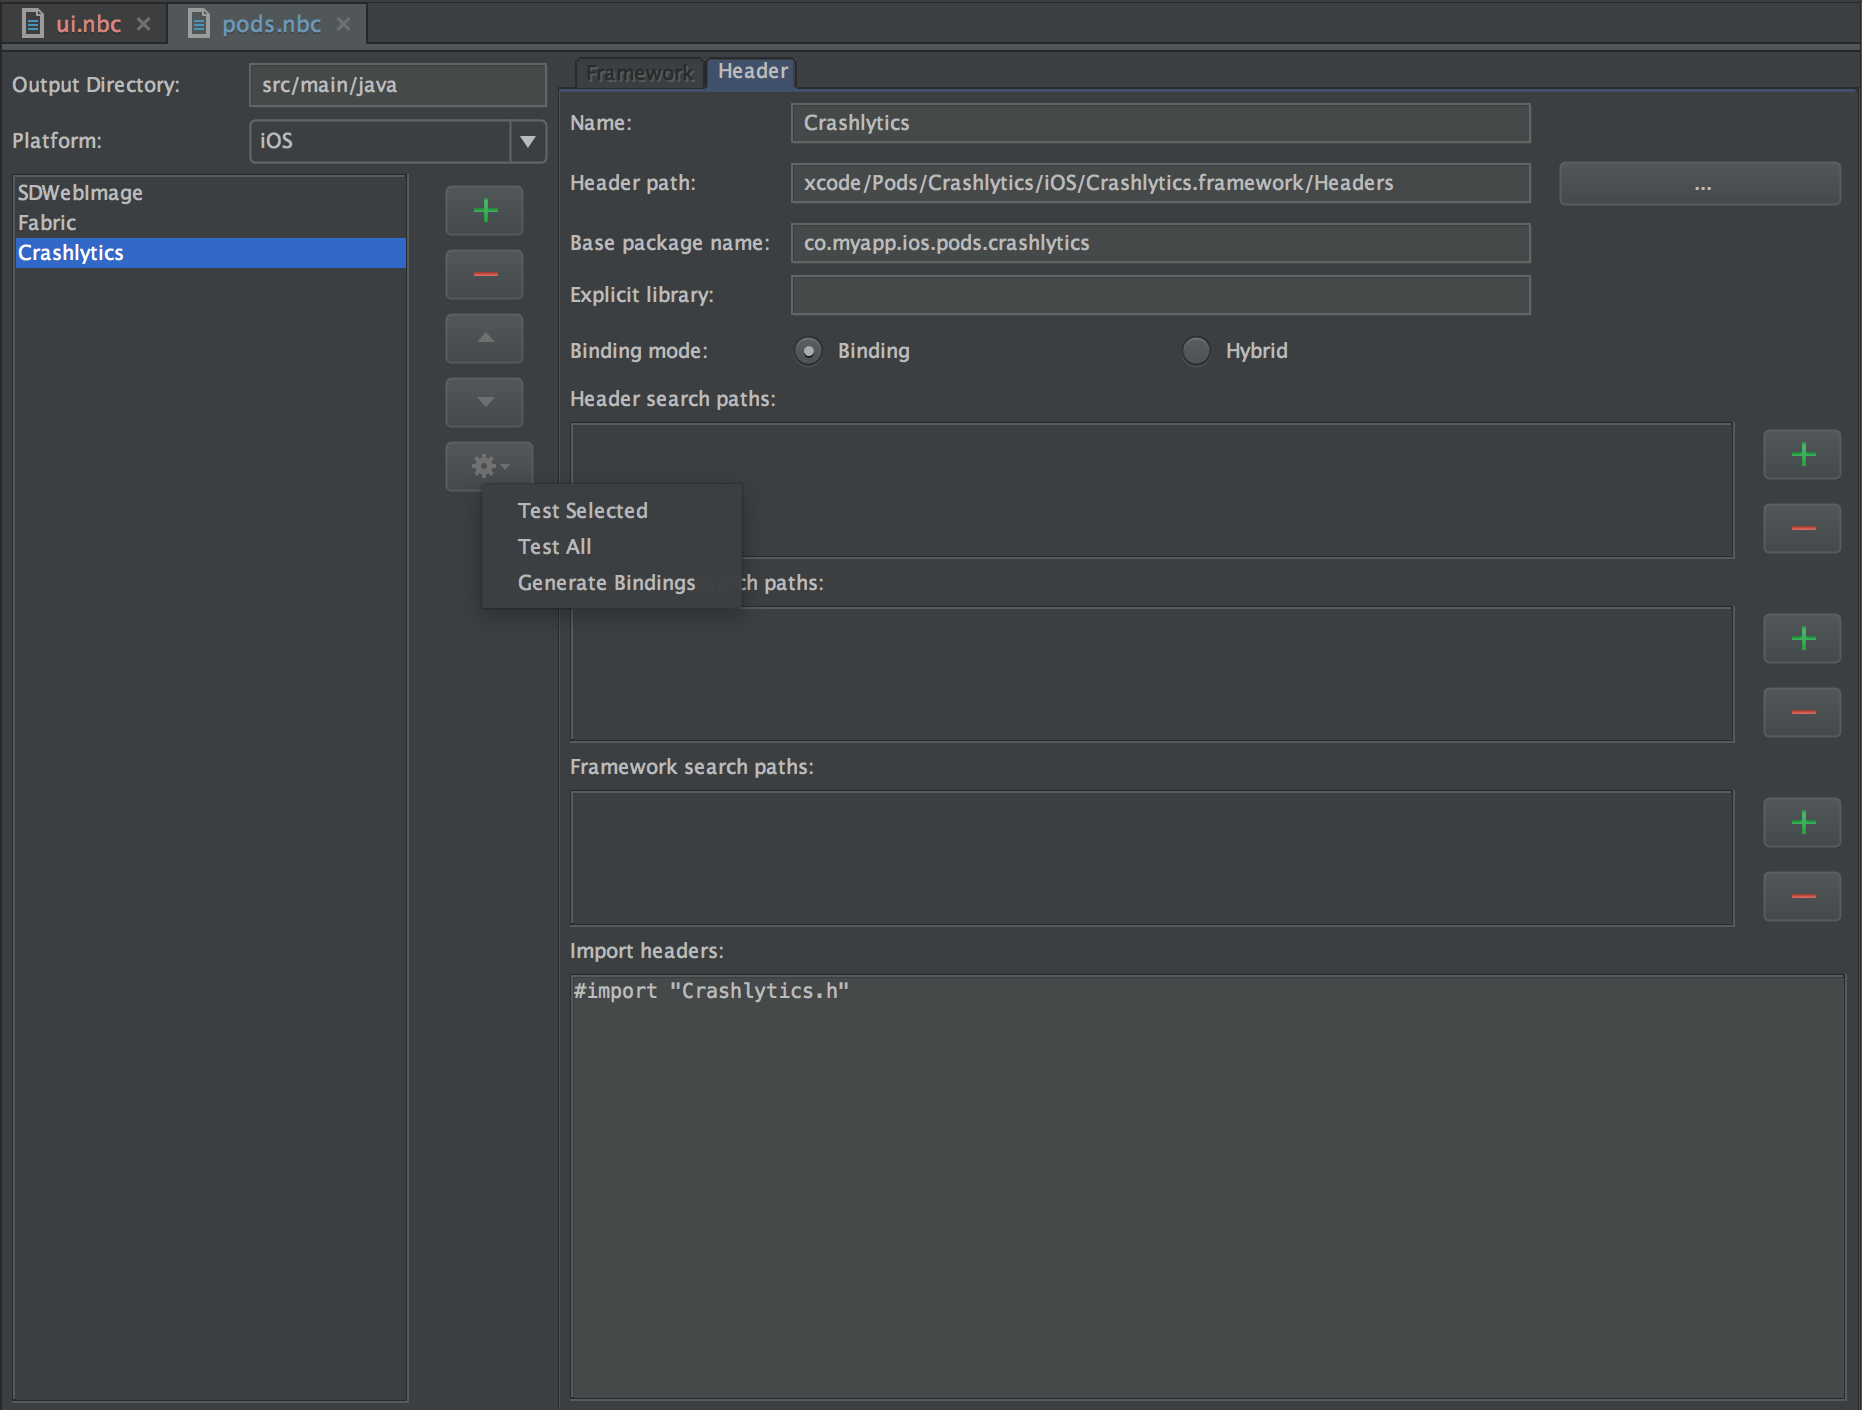 Gear icon android studio - Support - Multi-OS Engine